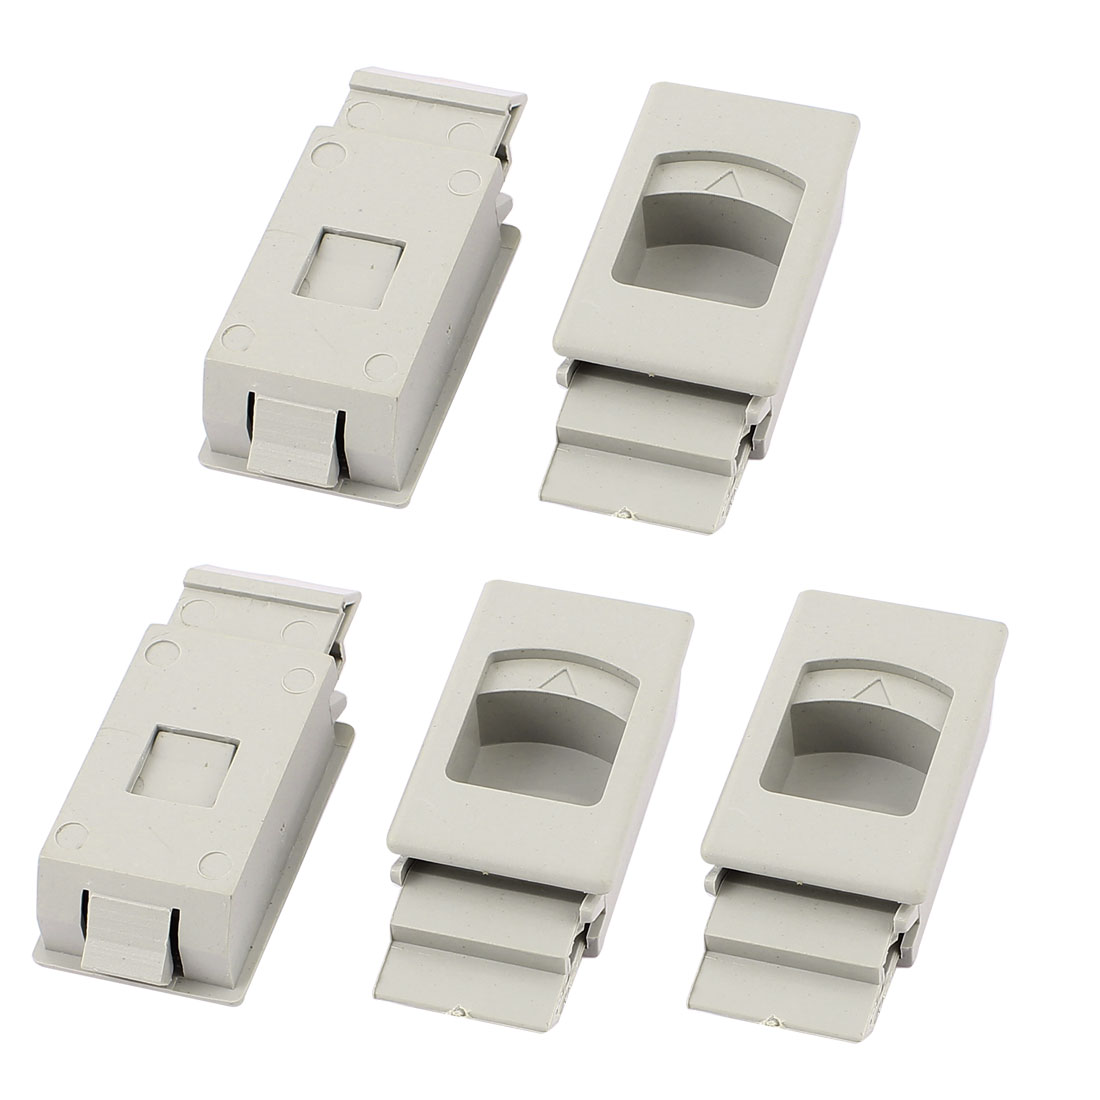 Cabinet Cupboard Drawer Inside Pull Triangle Mark Plastic Latch Gray 5pcs